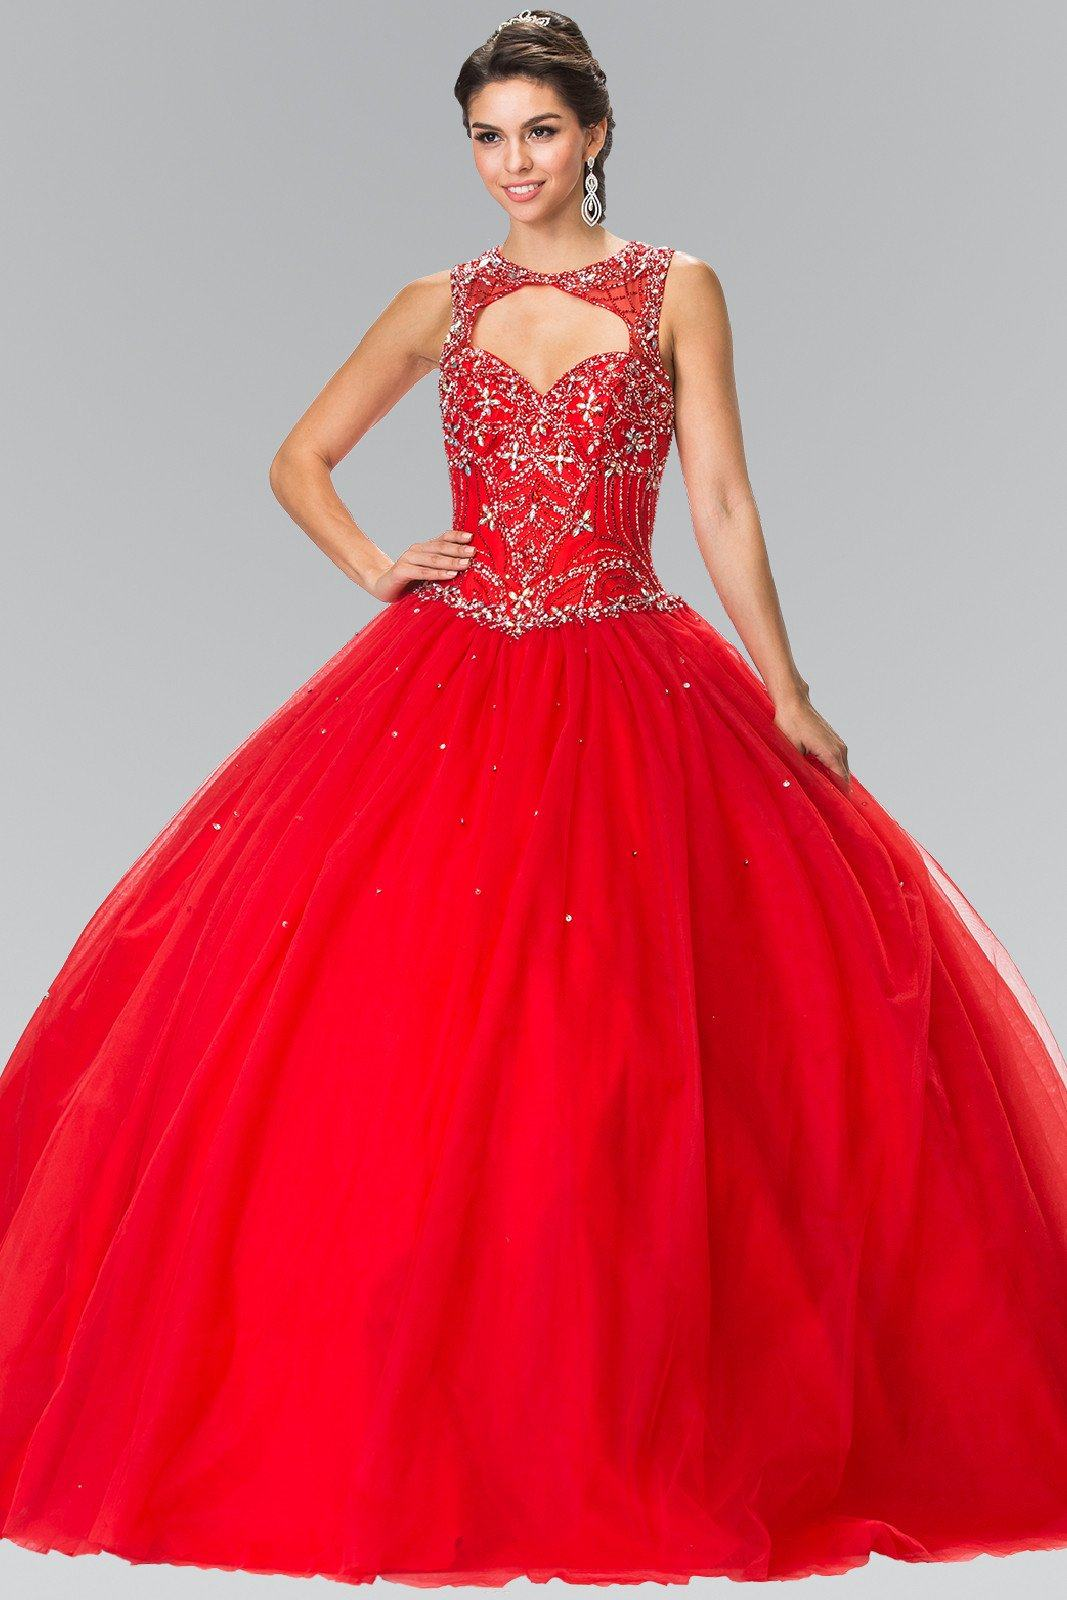 Red quinceanera ball gown dress #gl2351 – Simply Fab Dress